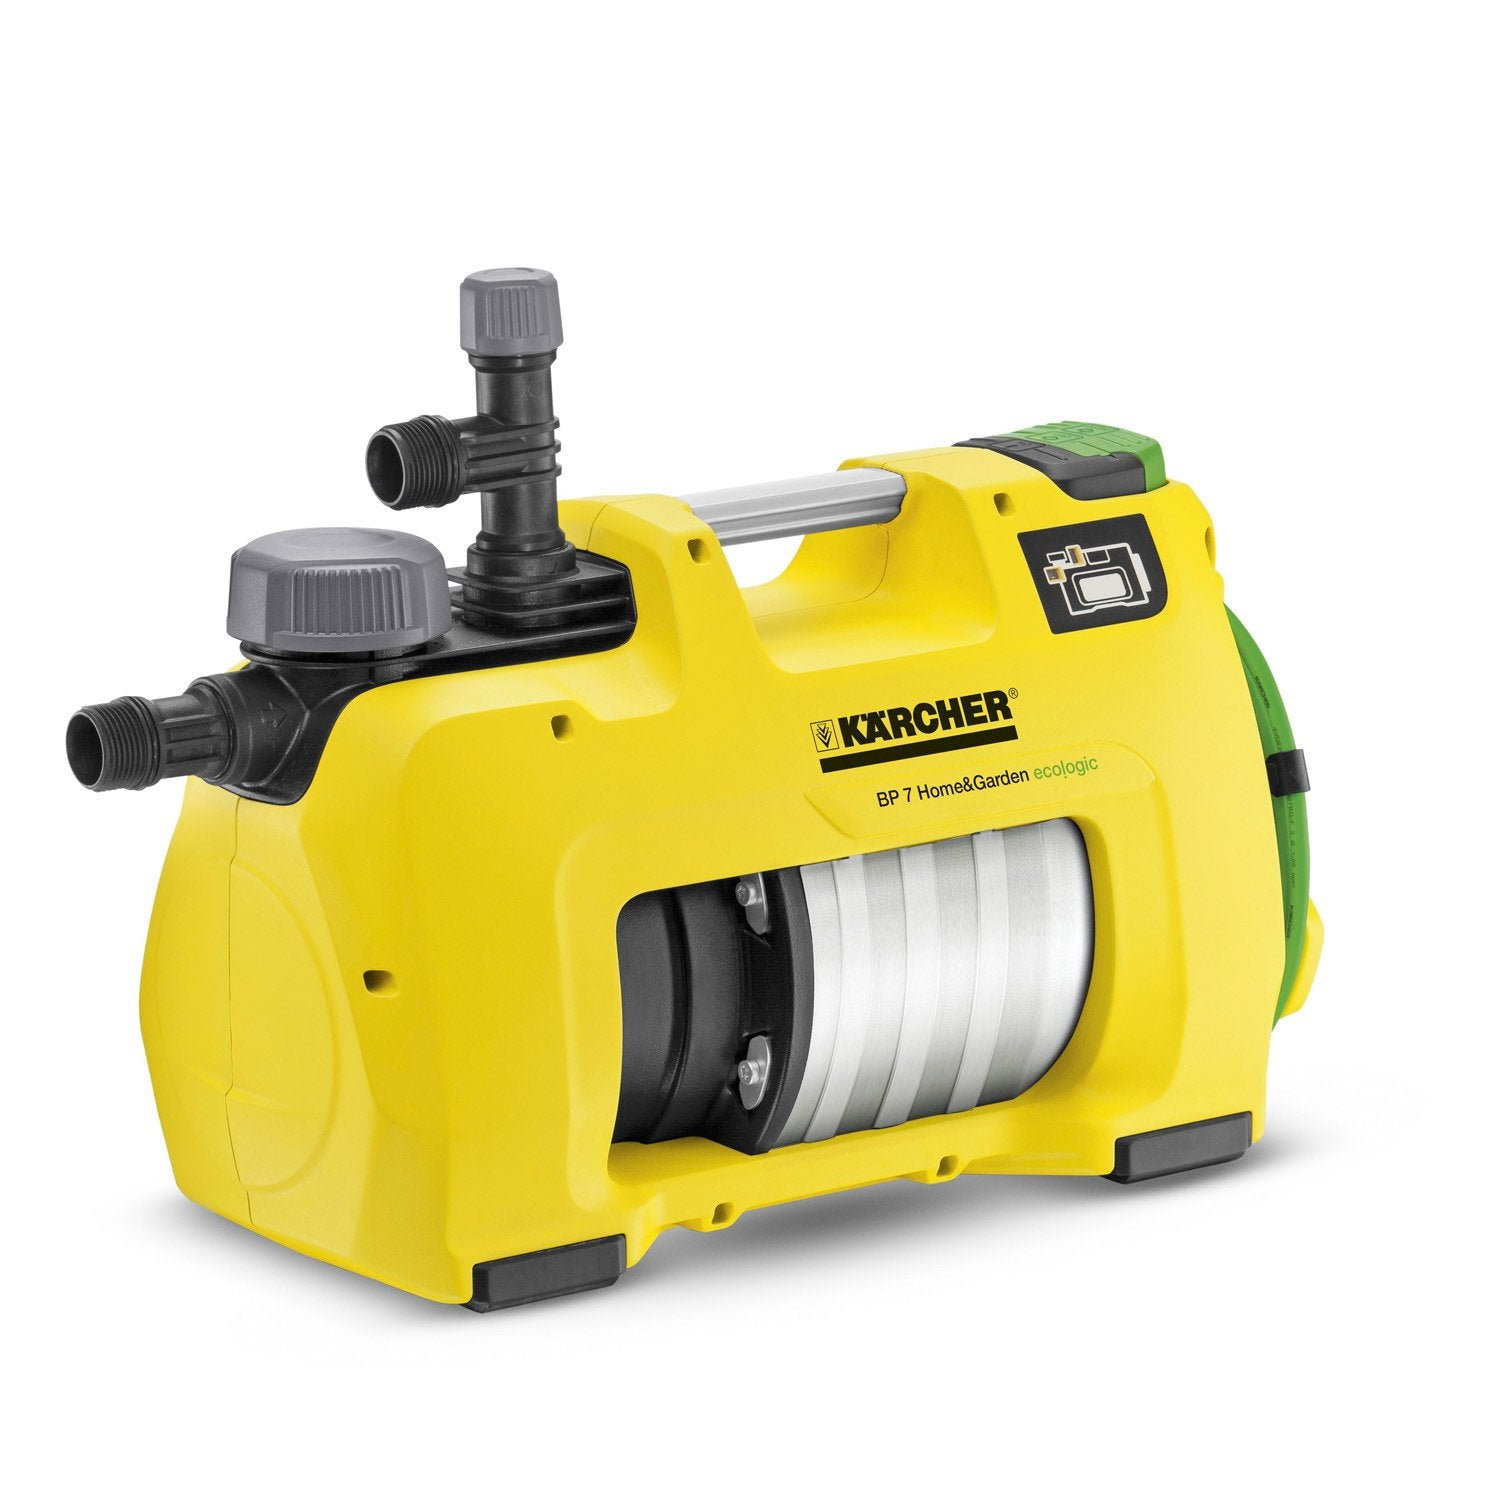 Pompe arrosage automatique karcher bp7 home and garden for Pompa sommersa leroy merlin